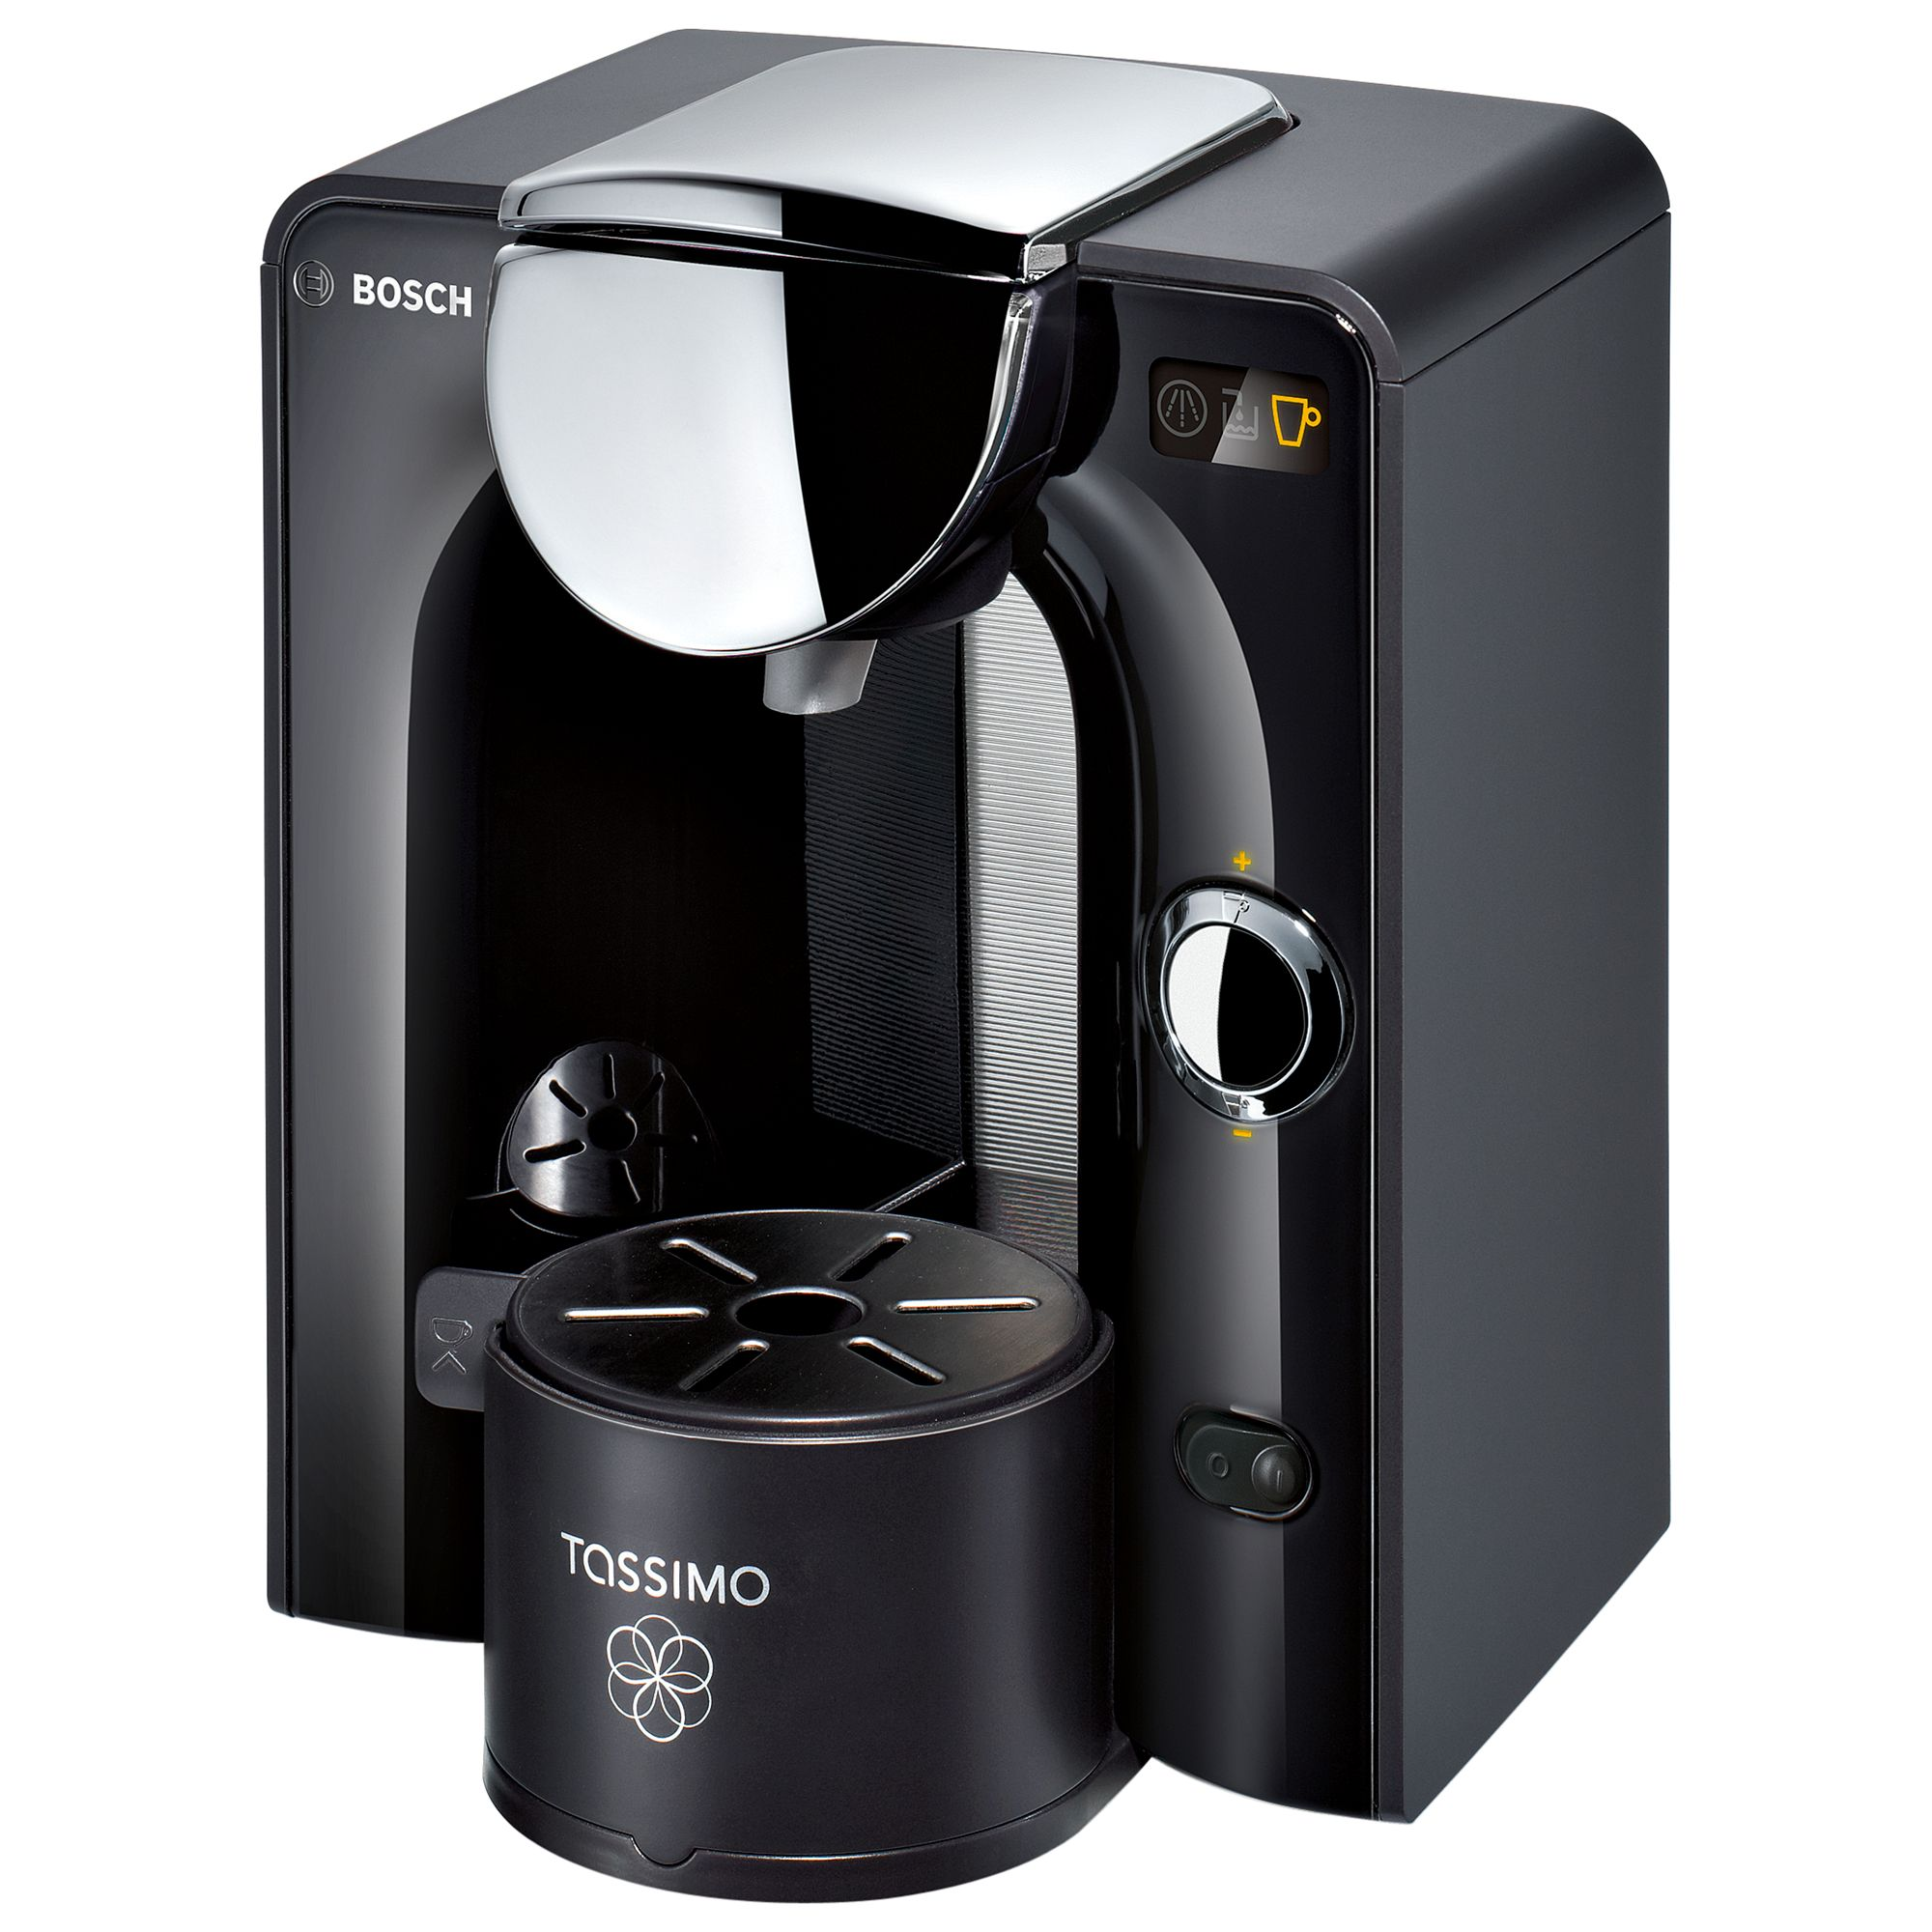 cheap tassimo coffee maker machines with delivery by post. Black Bedroom Furniture Sets. Home Design Ideas